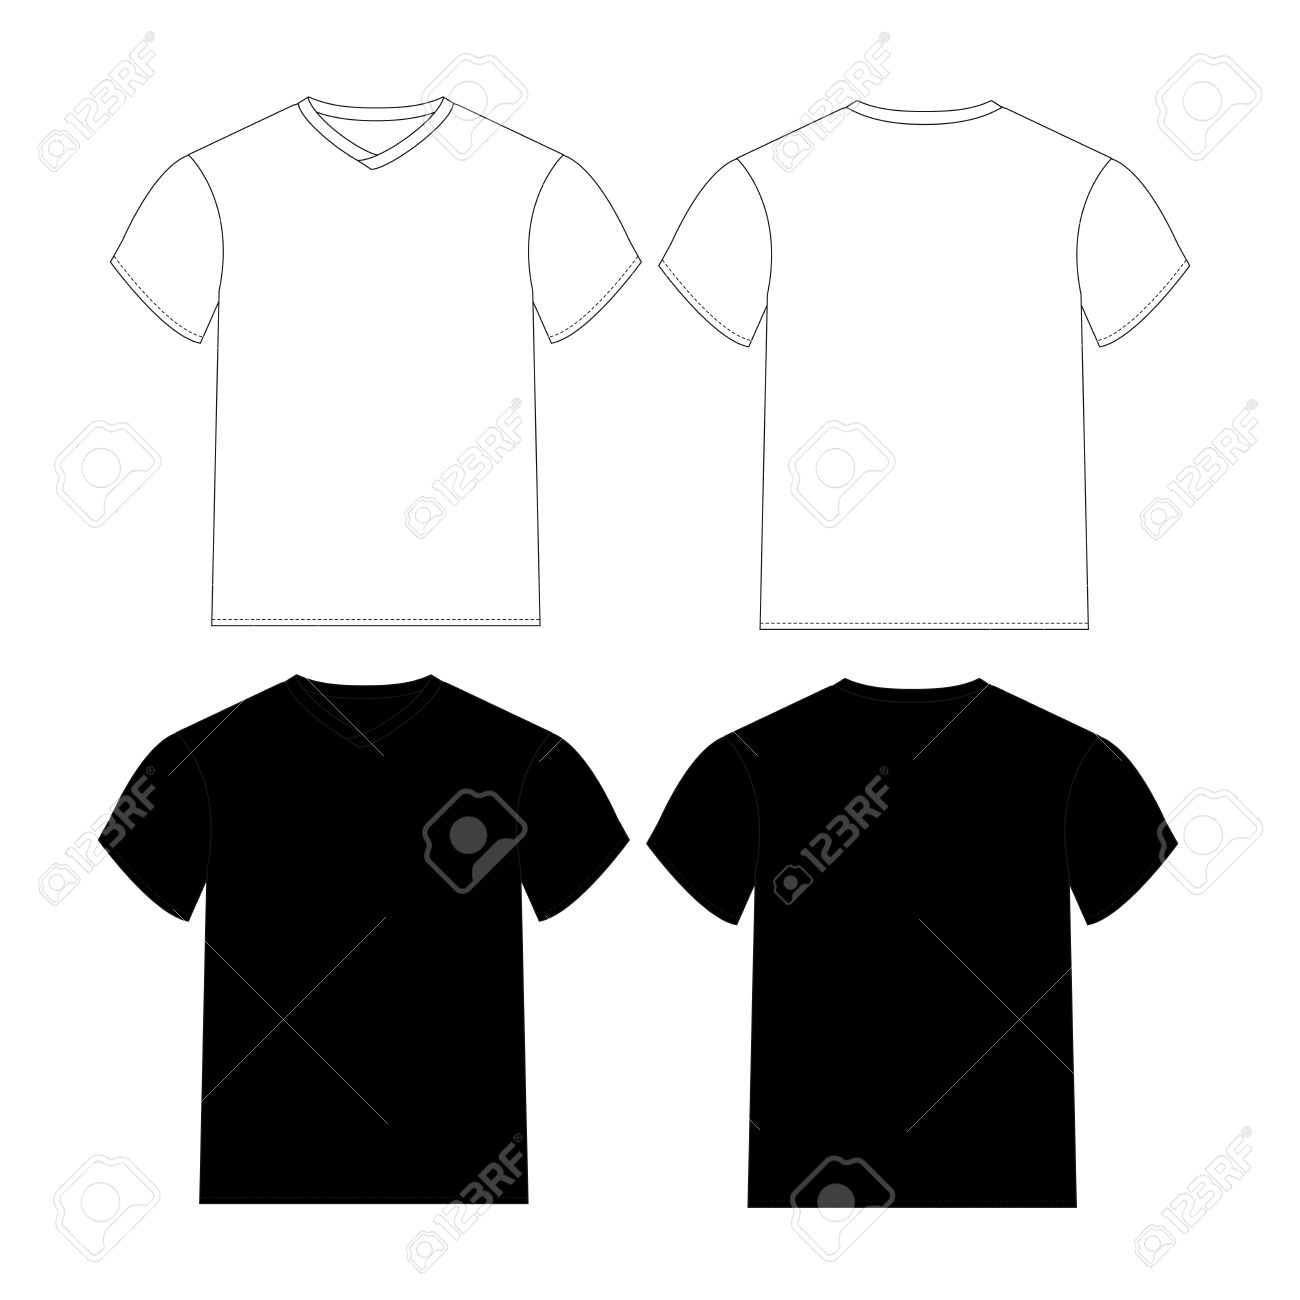 Blank T-shirts Template With Black And White Color Stock Photo ...